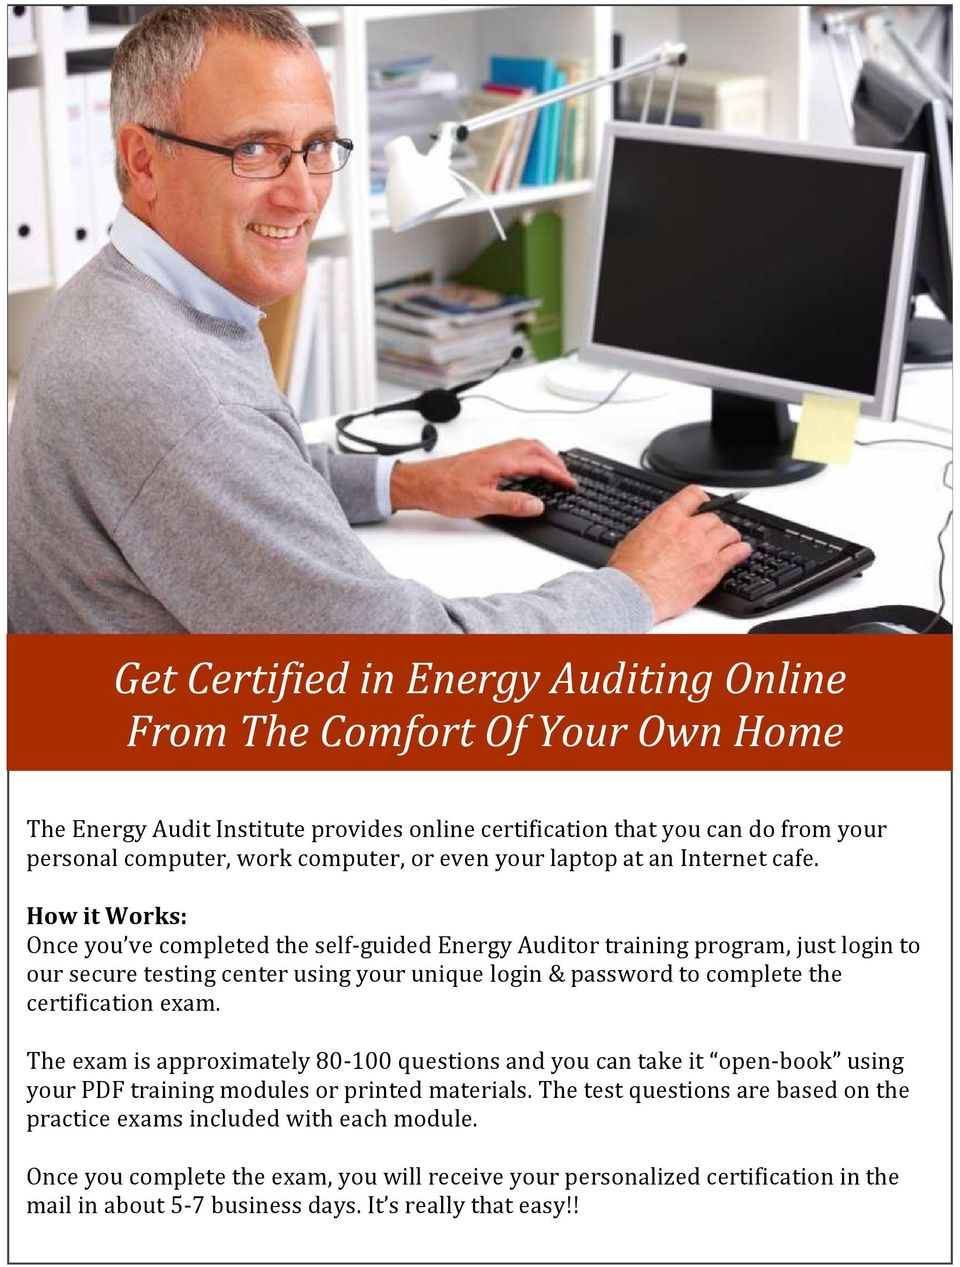 How it Works: Once you ve completed the self-guided Energy Auditor training program, just login to our secure testing center using your unique login & password to complete the certification